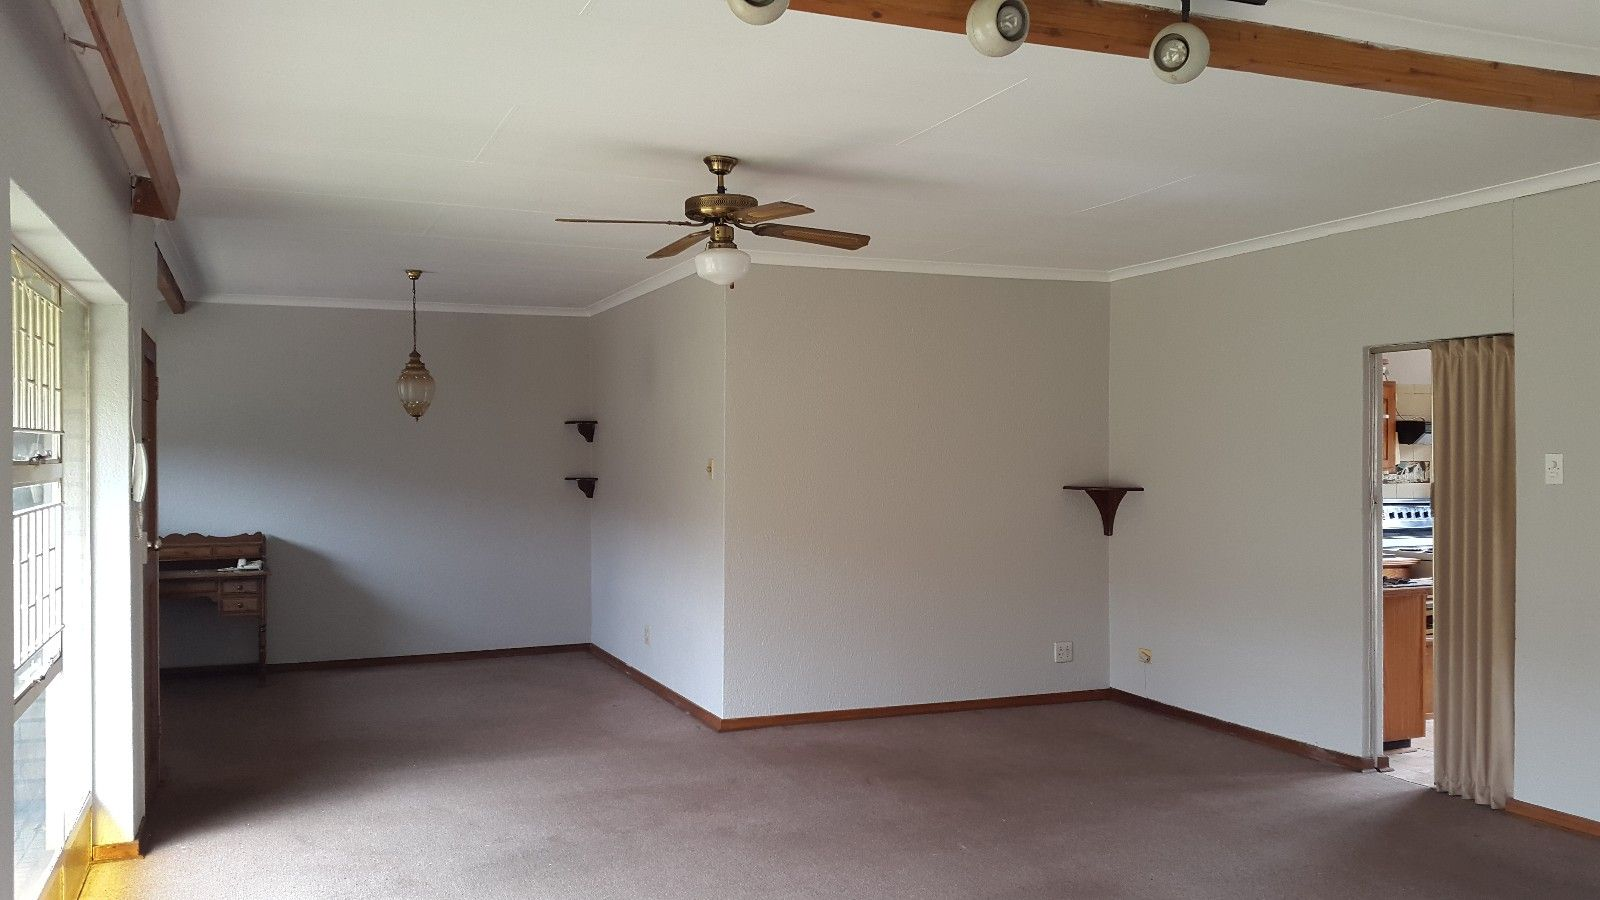 Potchefstroom Central property for sale. Ref No: 13457215. Picture no 9